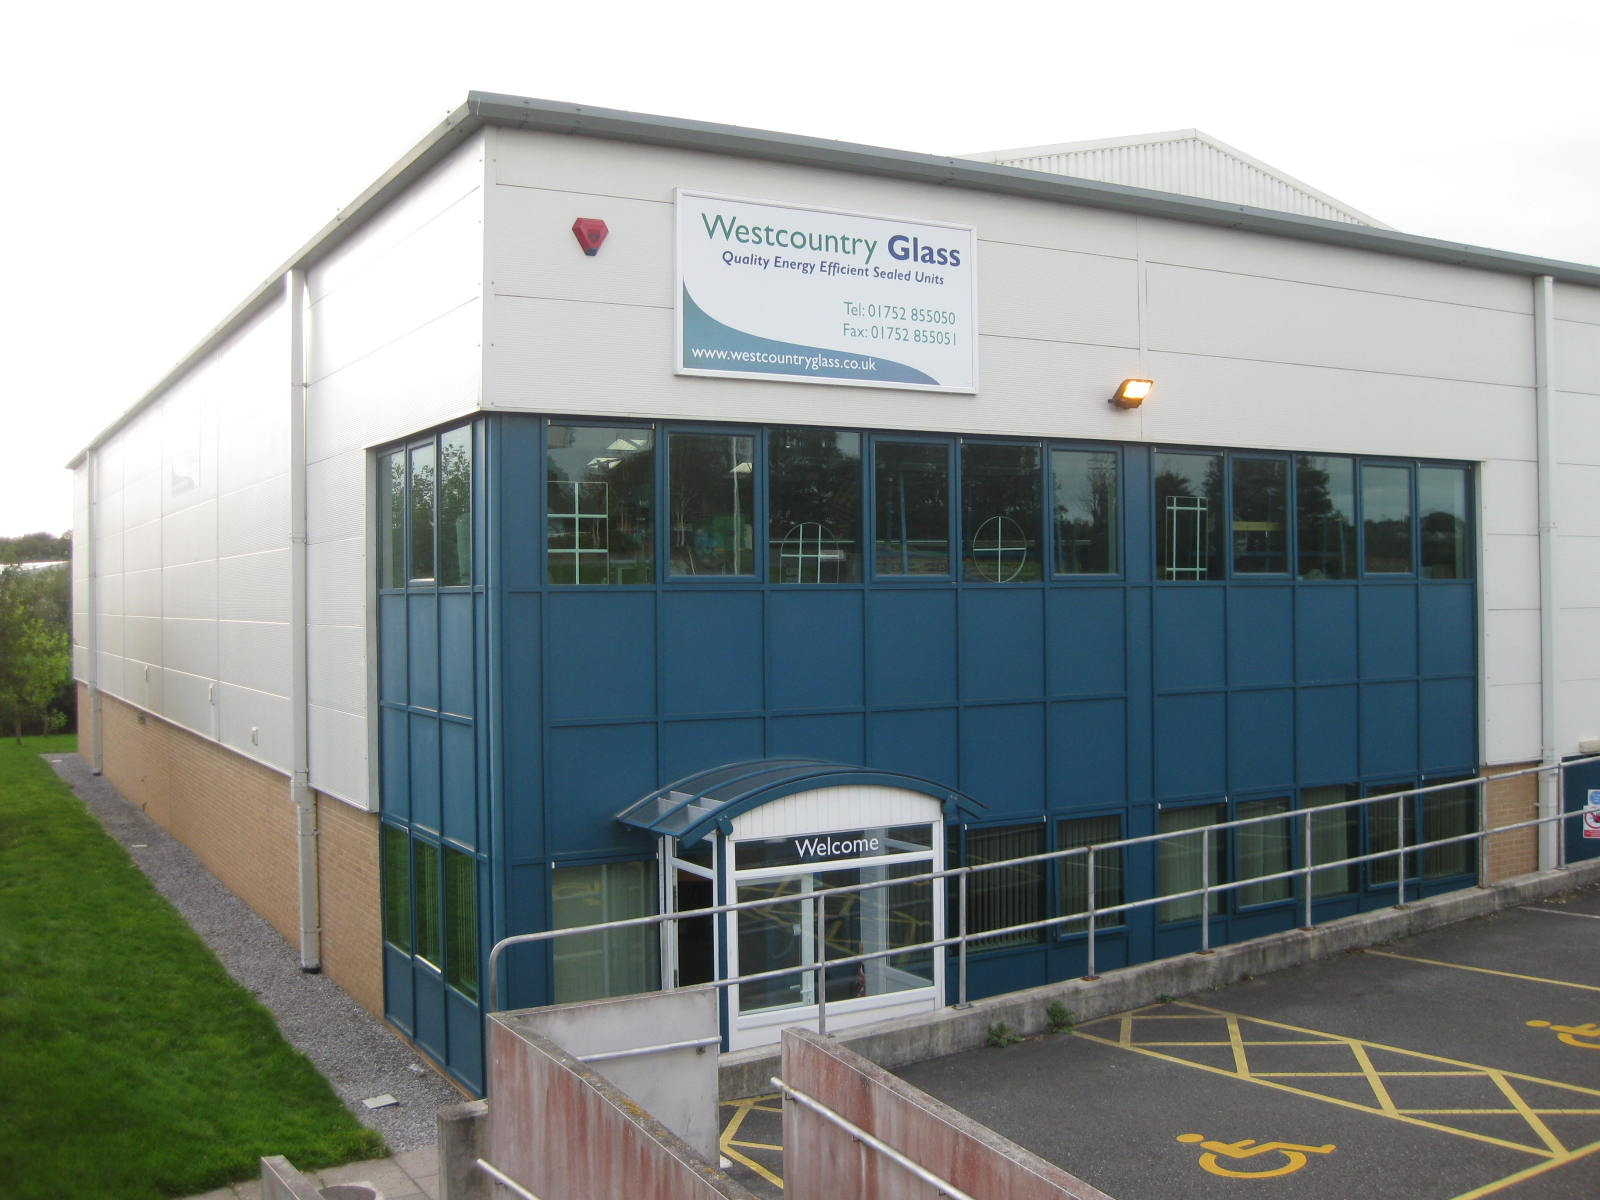 Westcountry Glass Centre